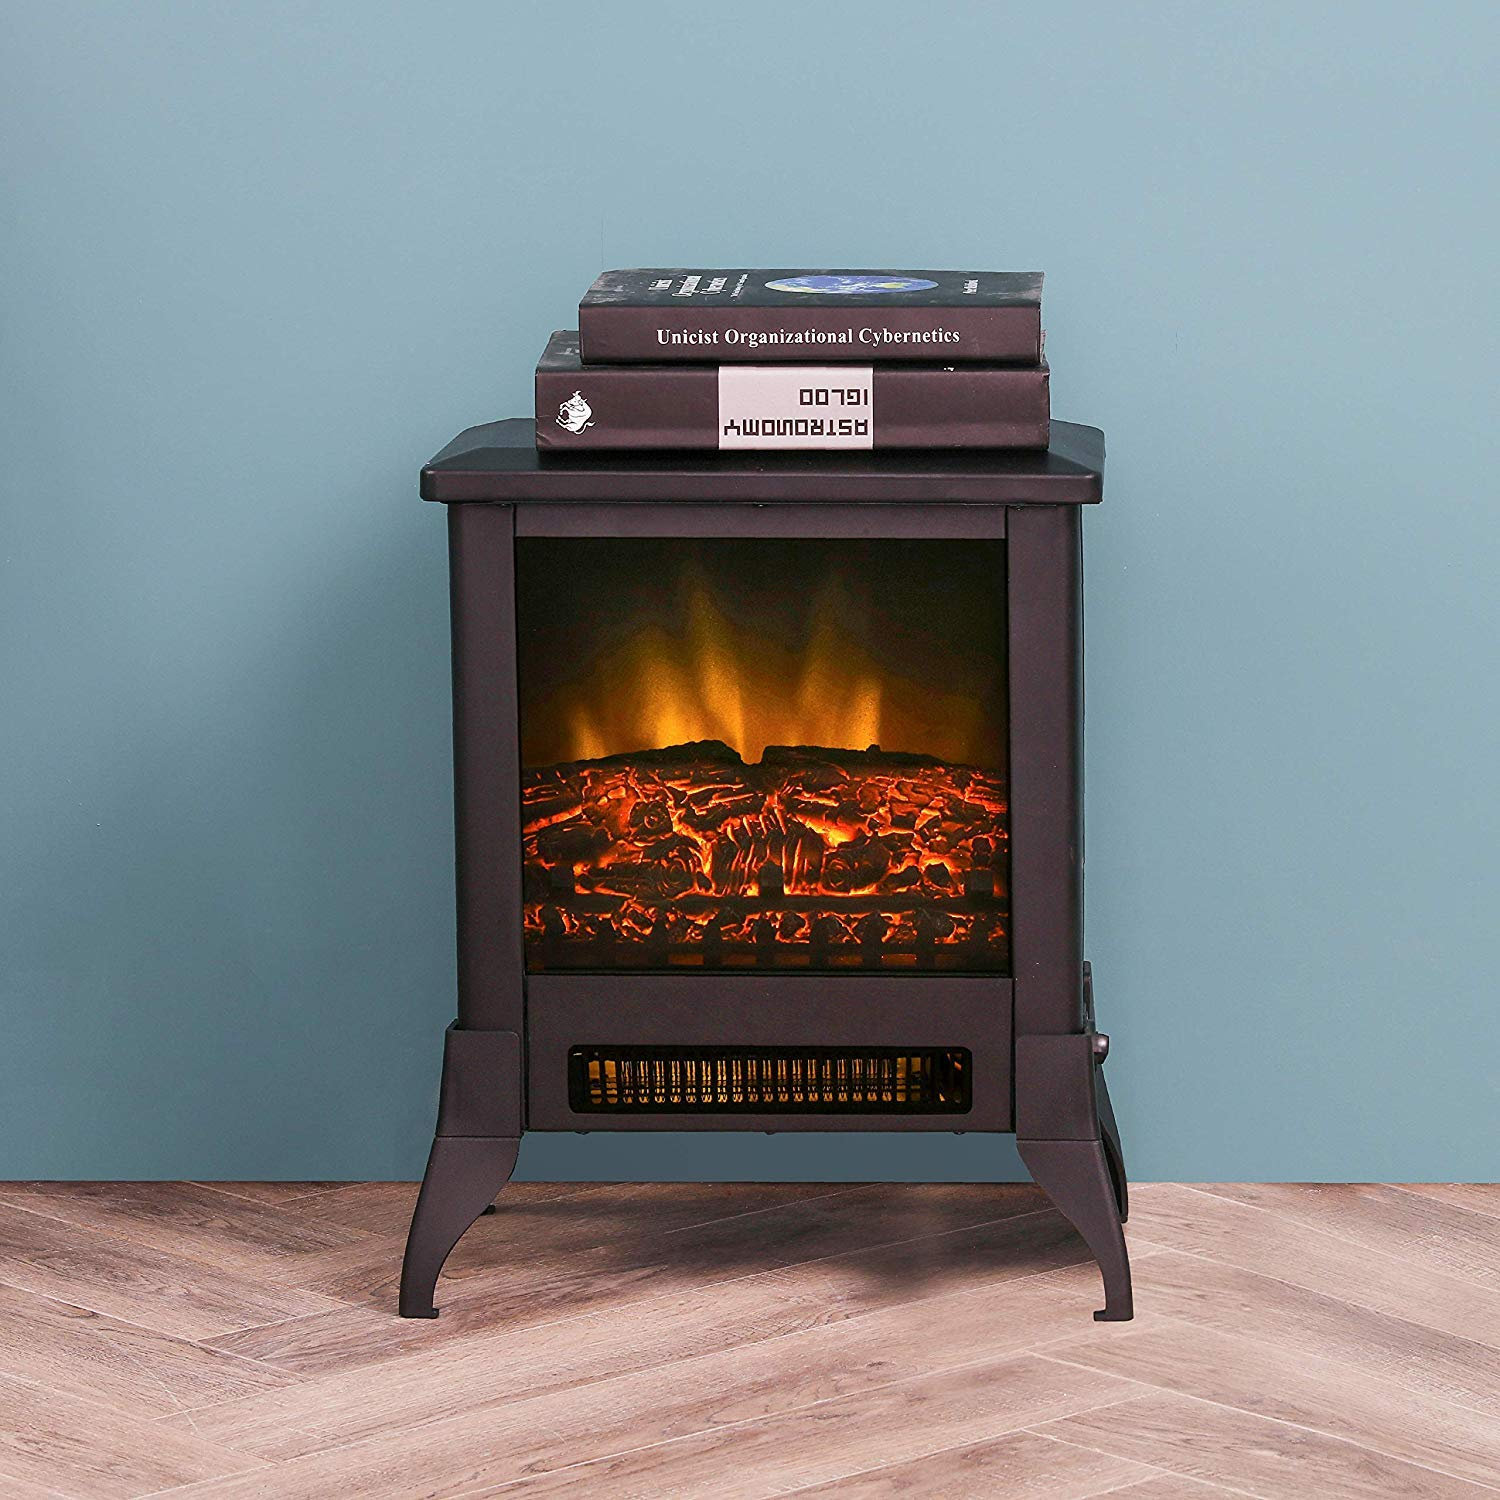 LOKATSE HOME 14 Electric Fireplace Space Stove Heater Freestanding with Realistic Flame, 2 Heat Modes, 1400W Ultra Strong Power, Overheating Safety Protection, 14 inch